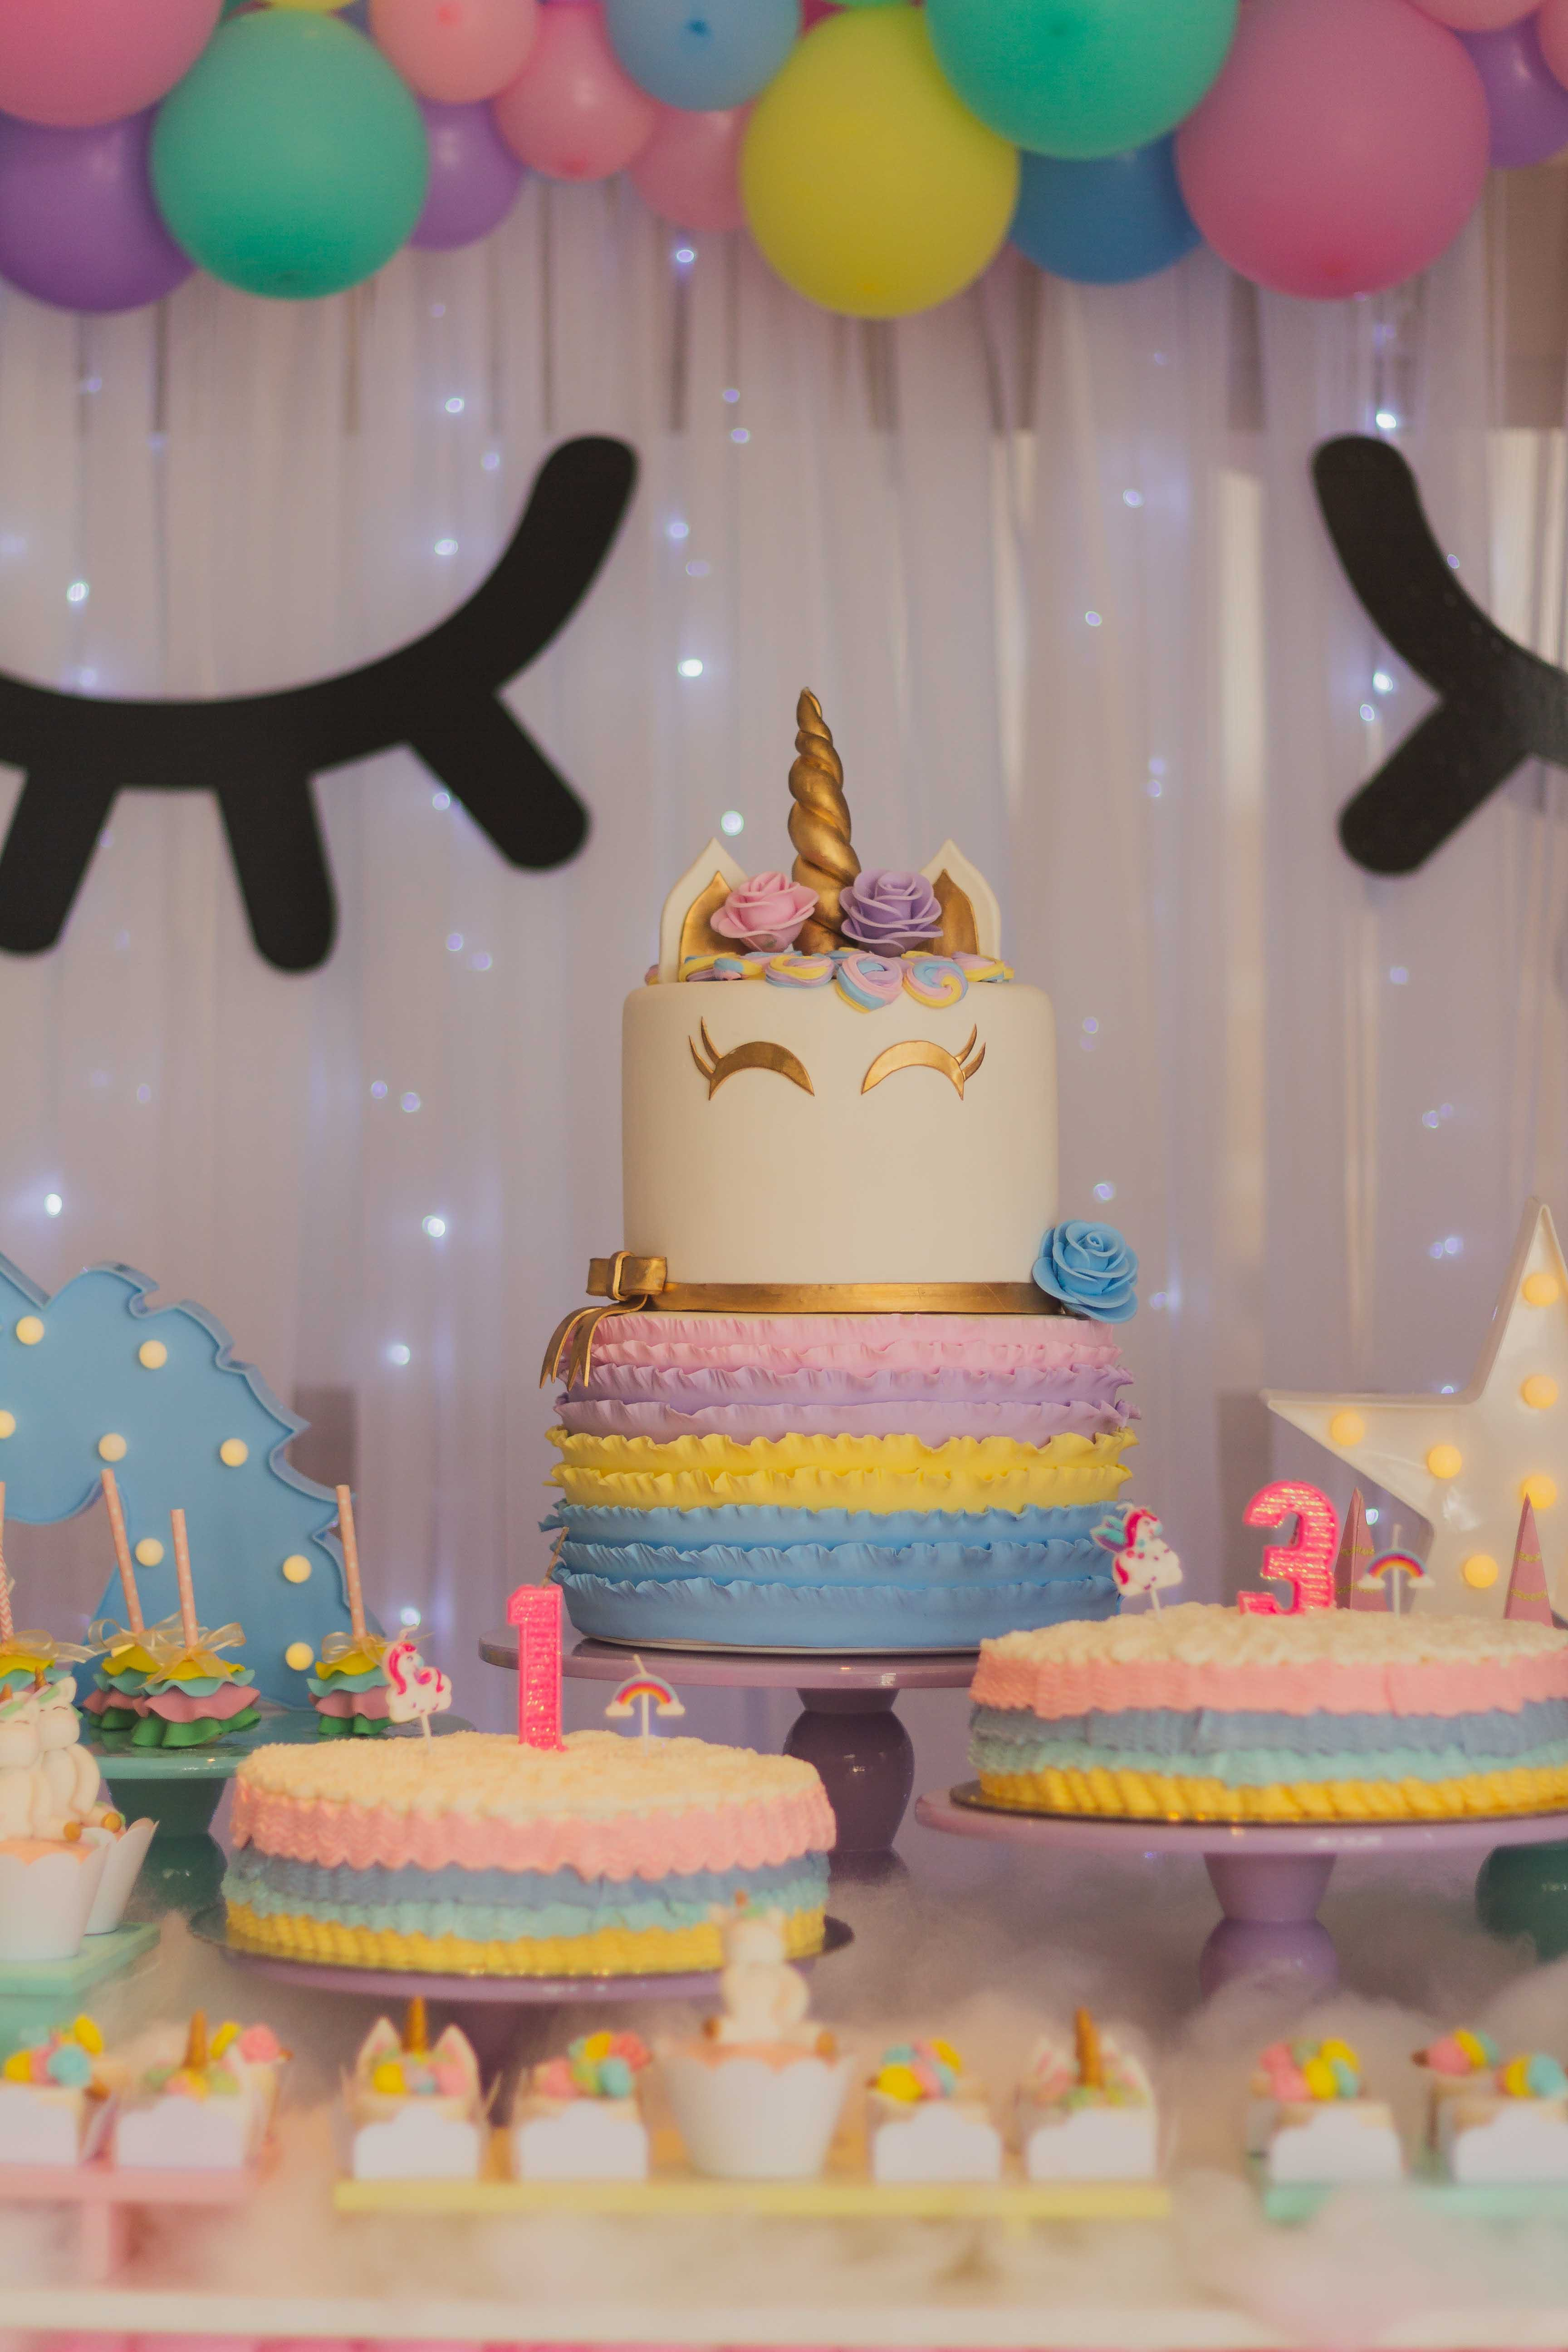 Free stock photo of birthday, birthday cake, cake, unicorn